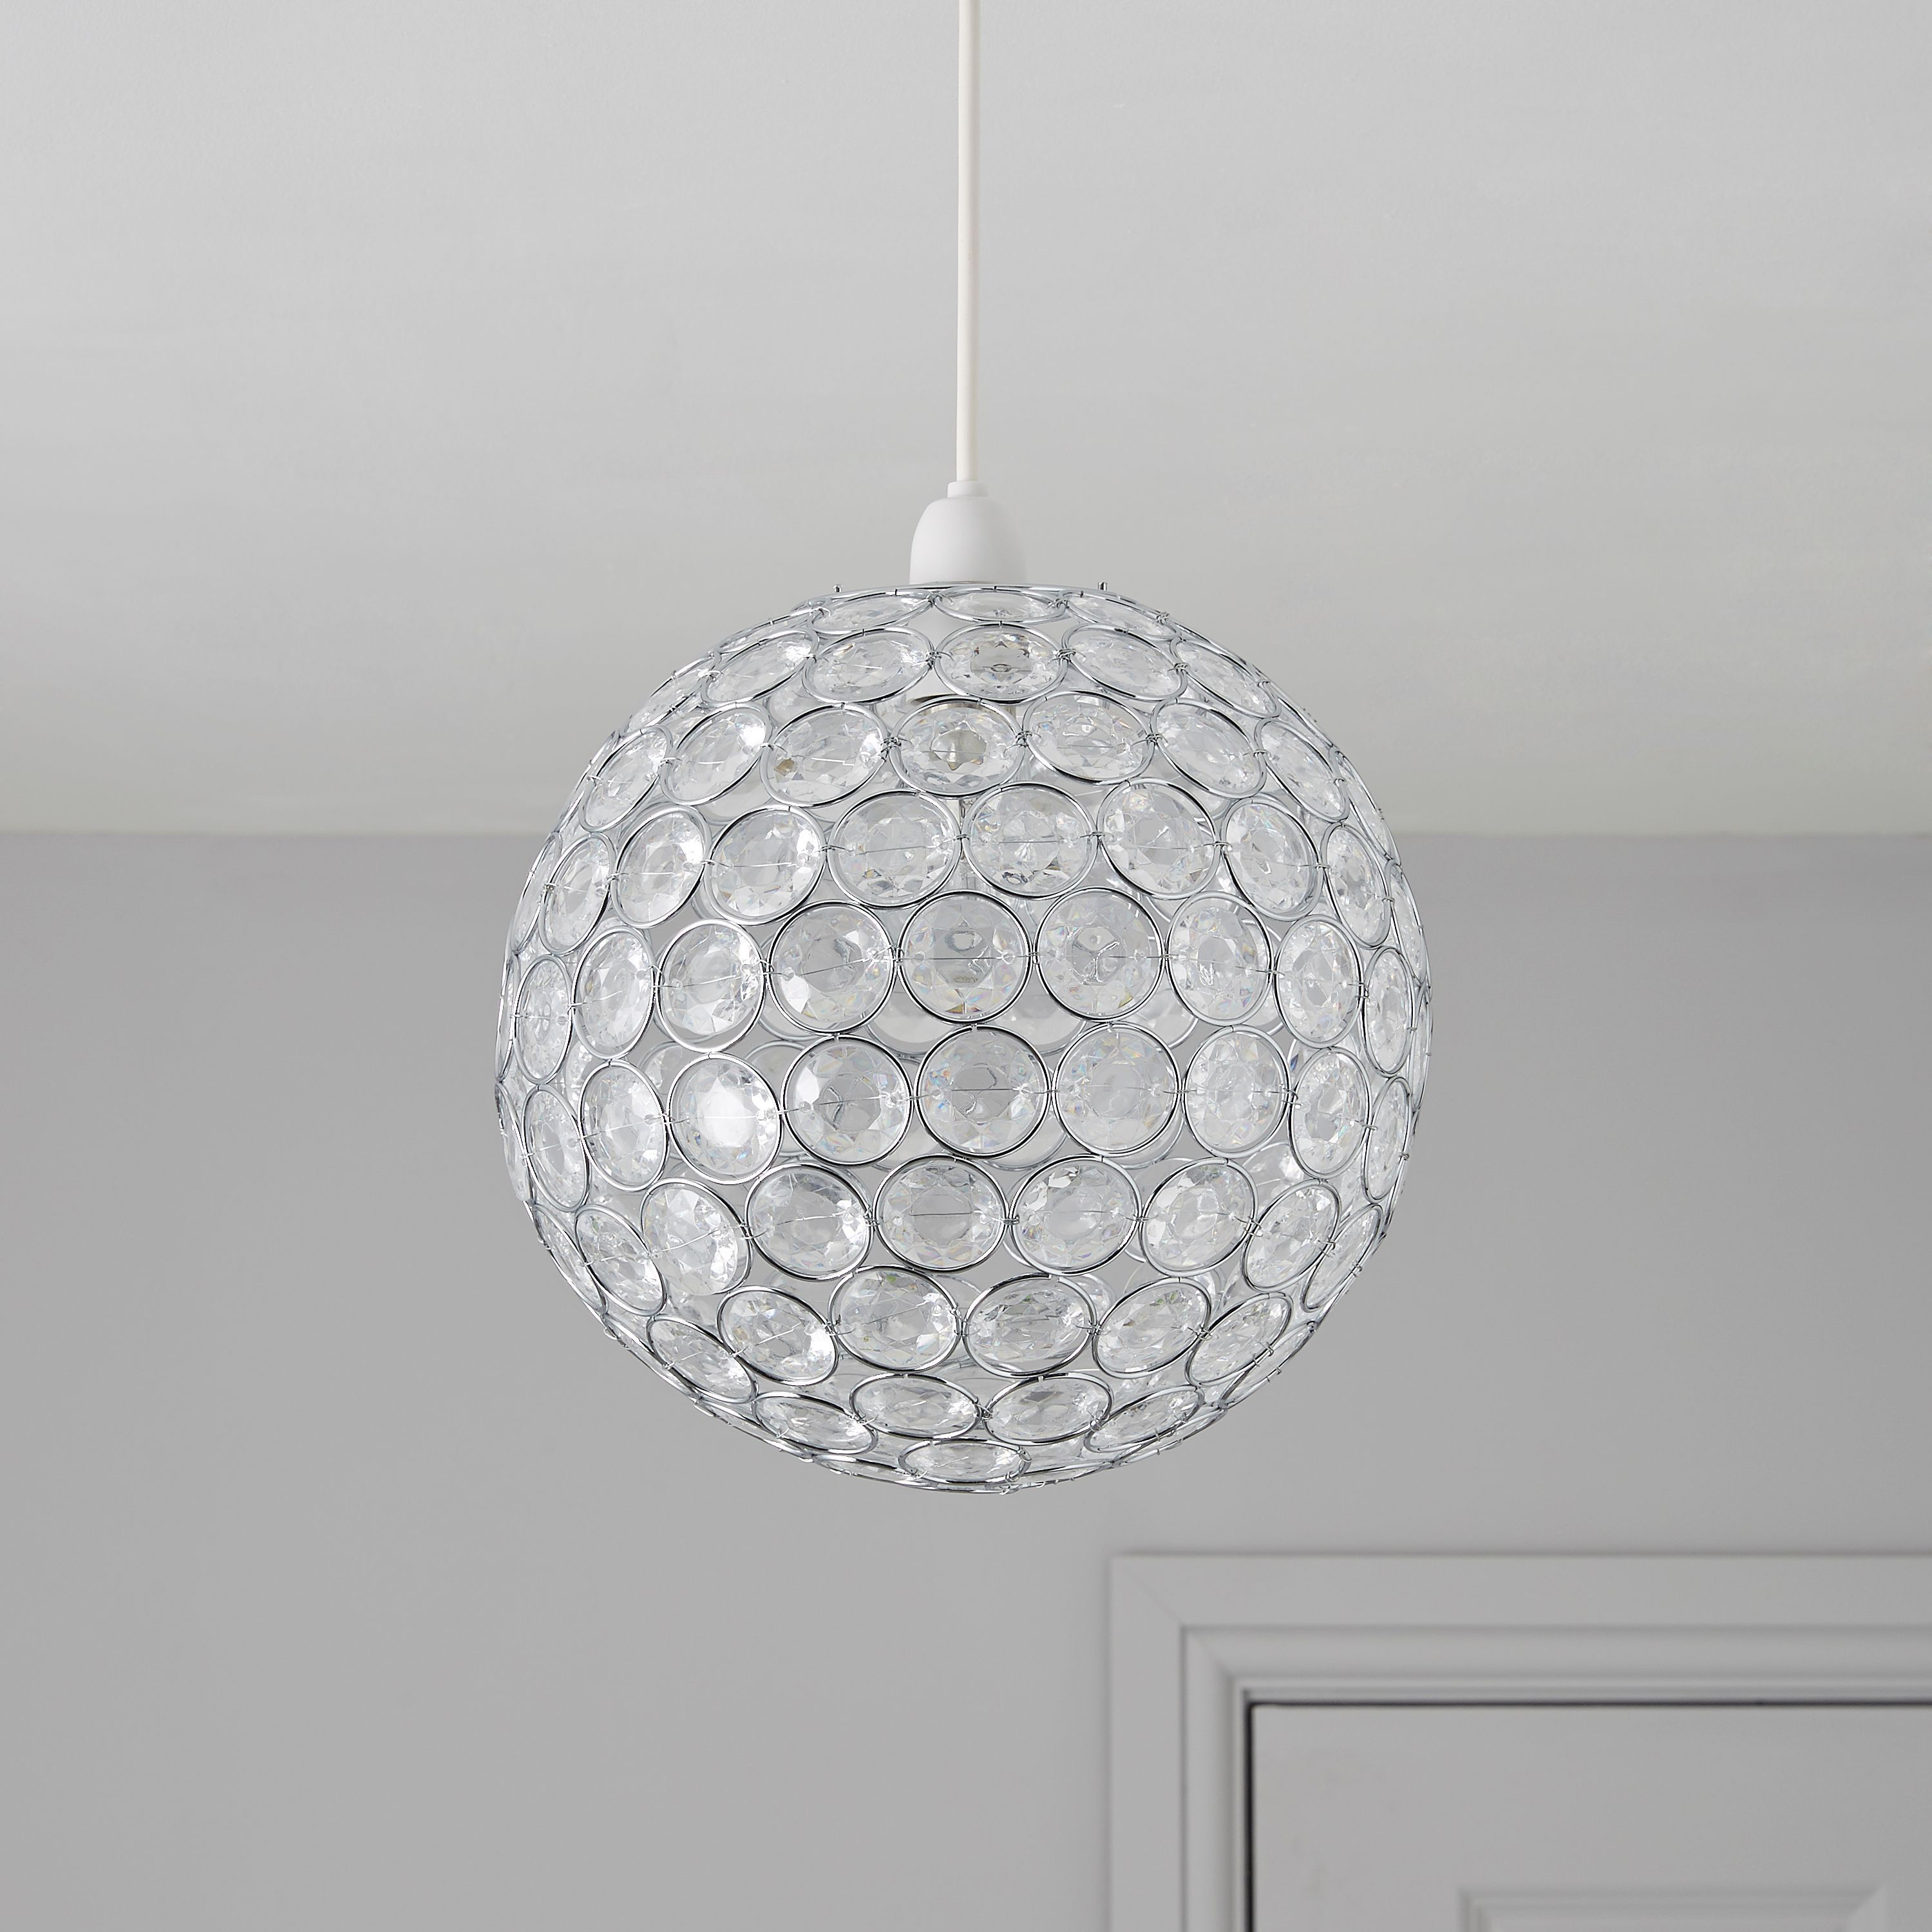 Ceiling Light Shades Ceiling Light Shades B Q